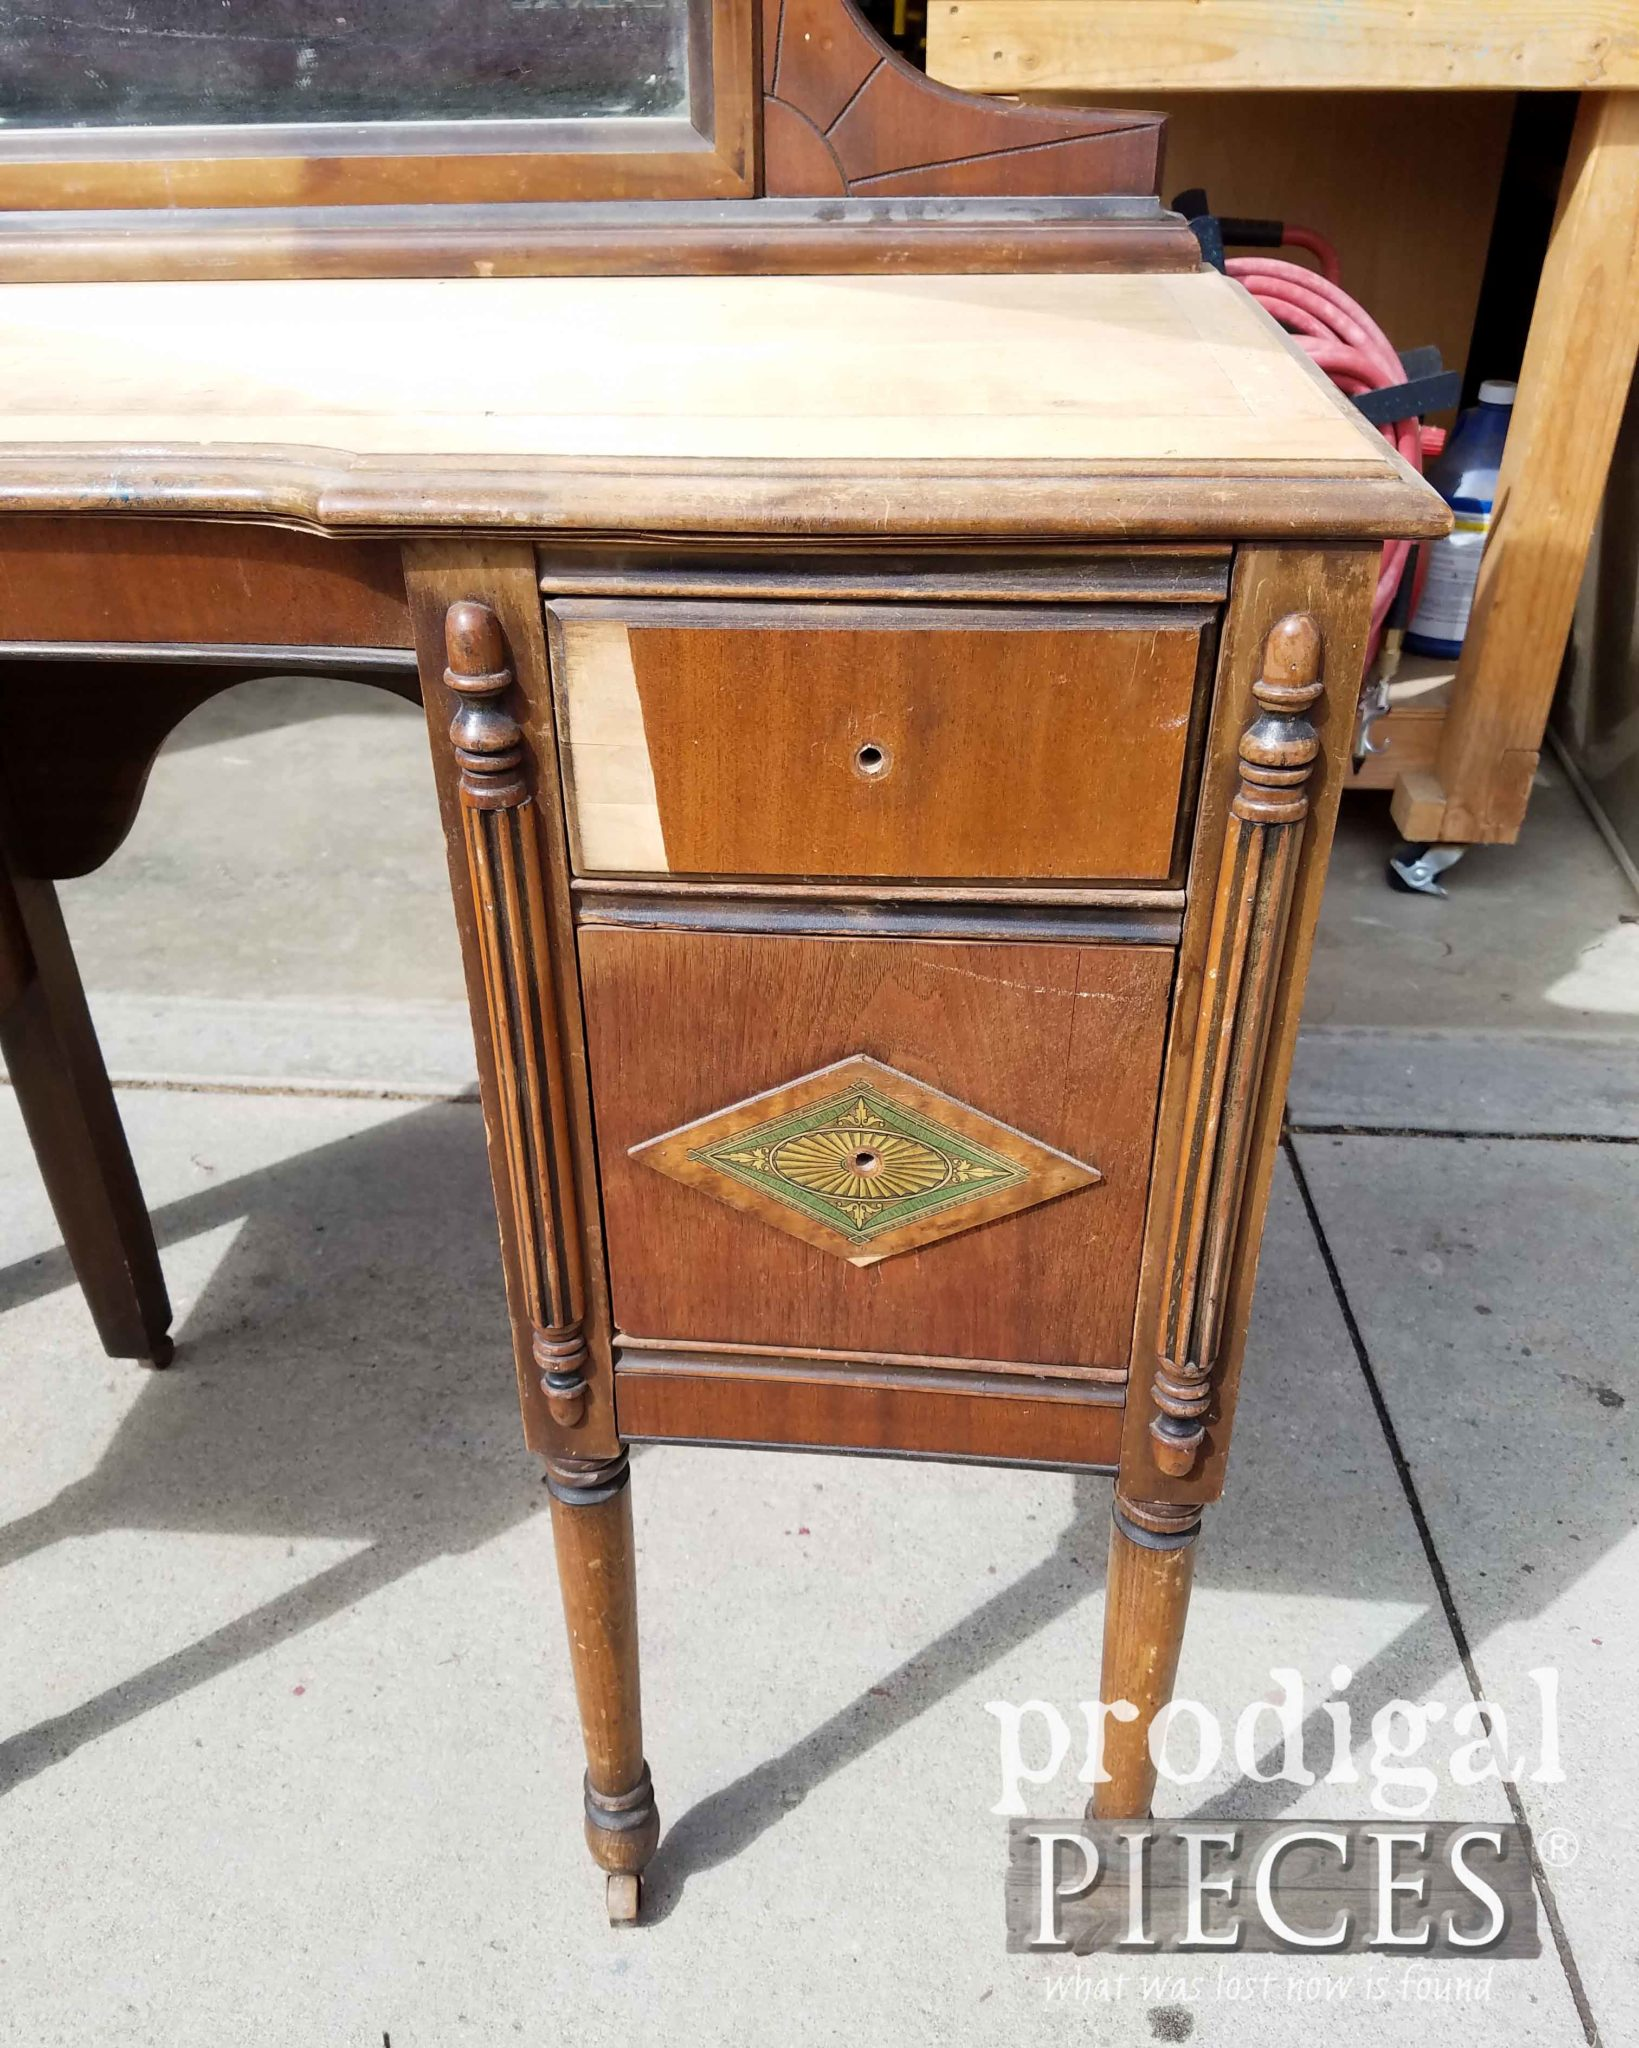 Antique Vanity Drawer with Missing Veneer | prodigalpieces.com